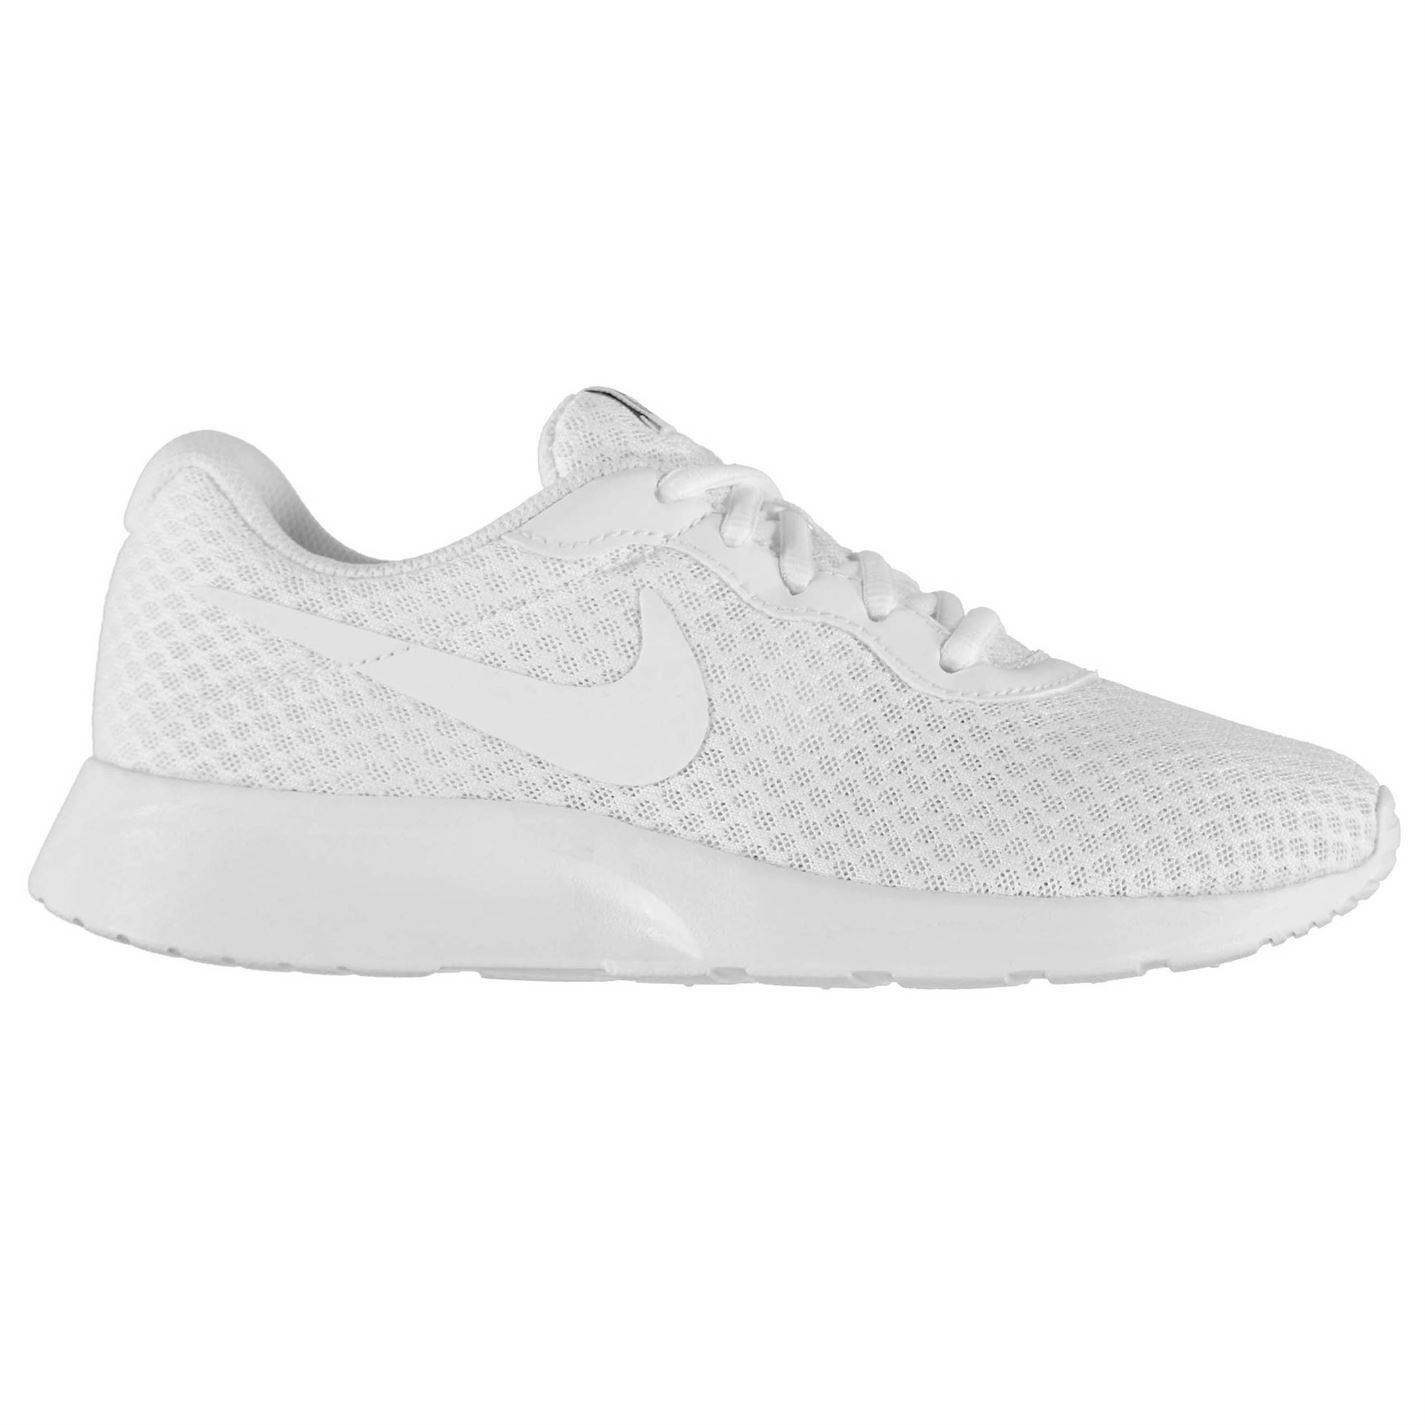 Nike Gym Tanjun Training Schuhes Damenschuhe Weiß Weiß Gym Nike Fitness Trainers d391e1